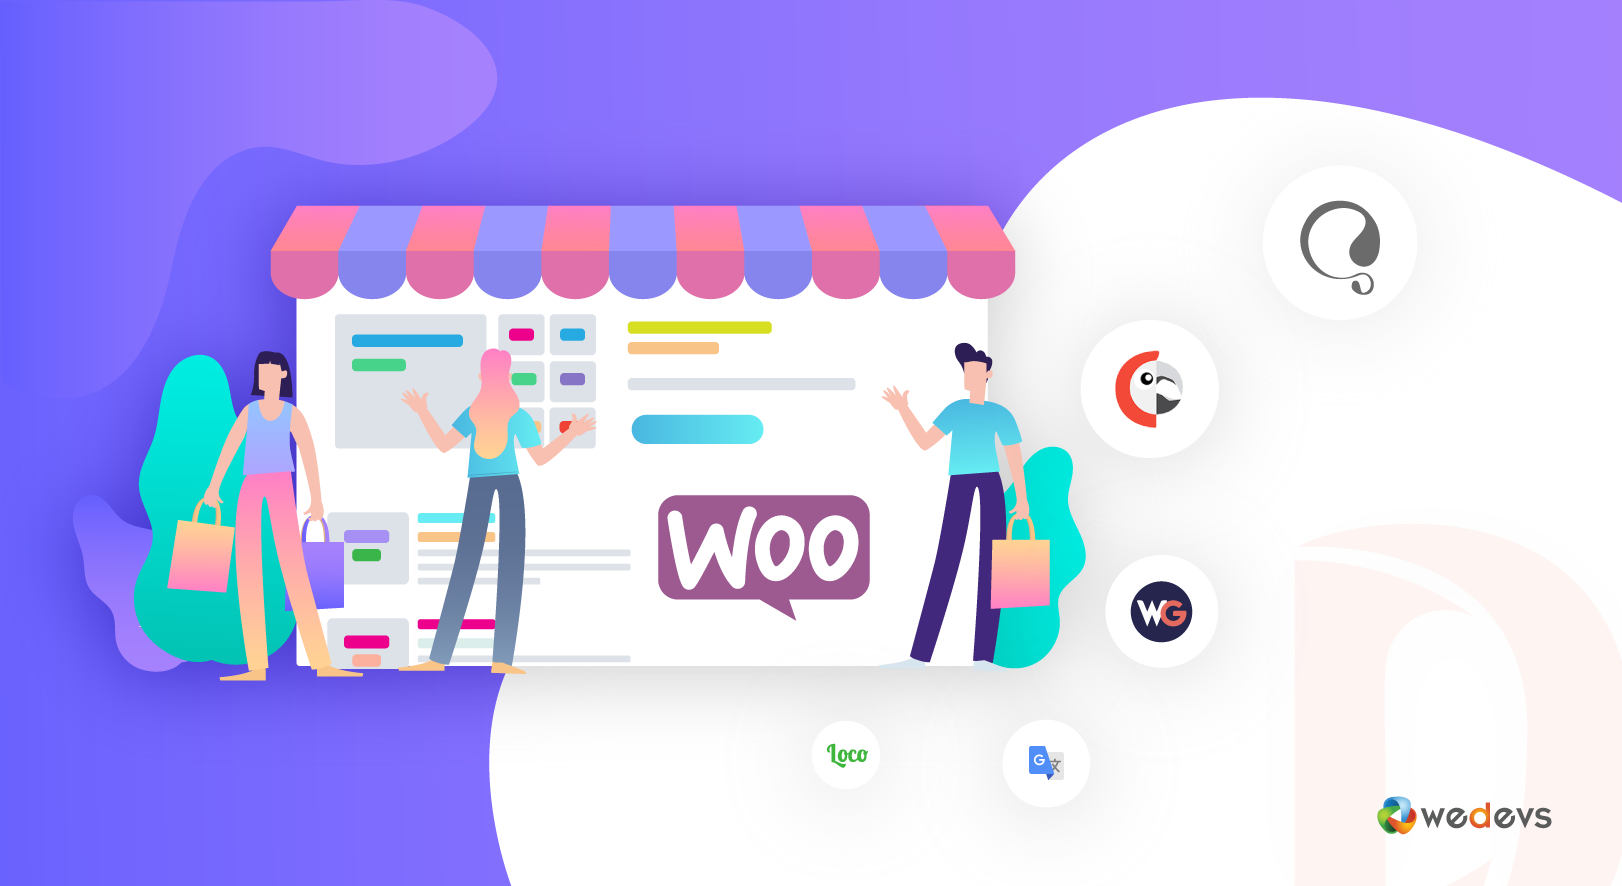 WooCommerce multilingual marketplace